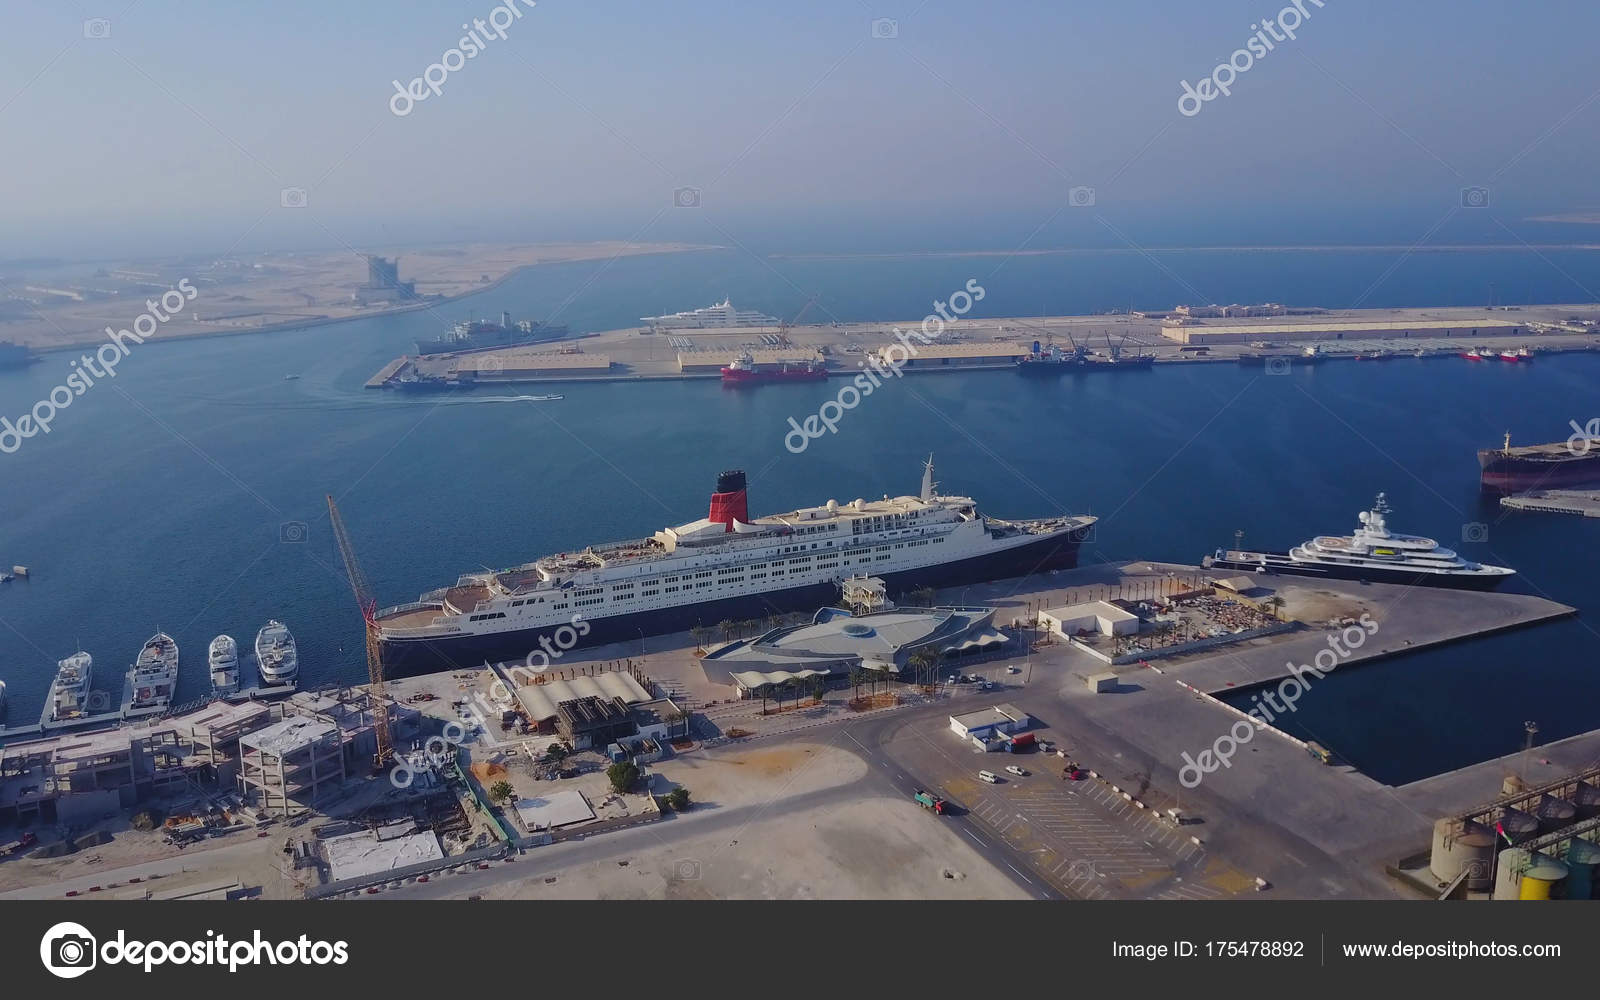 Huge Cruise Ship Is On The Water Aerial View Of Dubai Seaport - Huge cruise ship